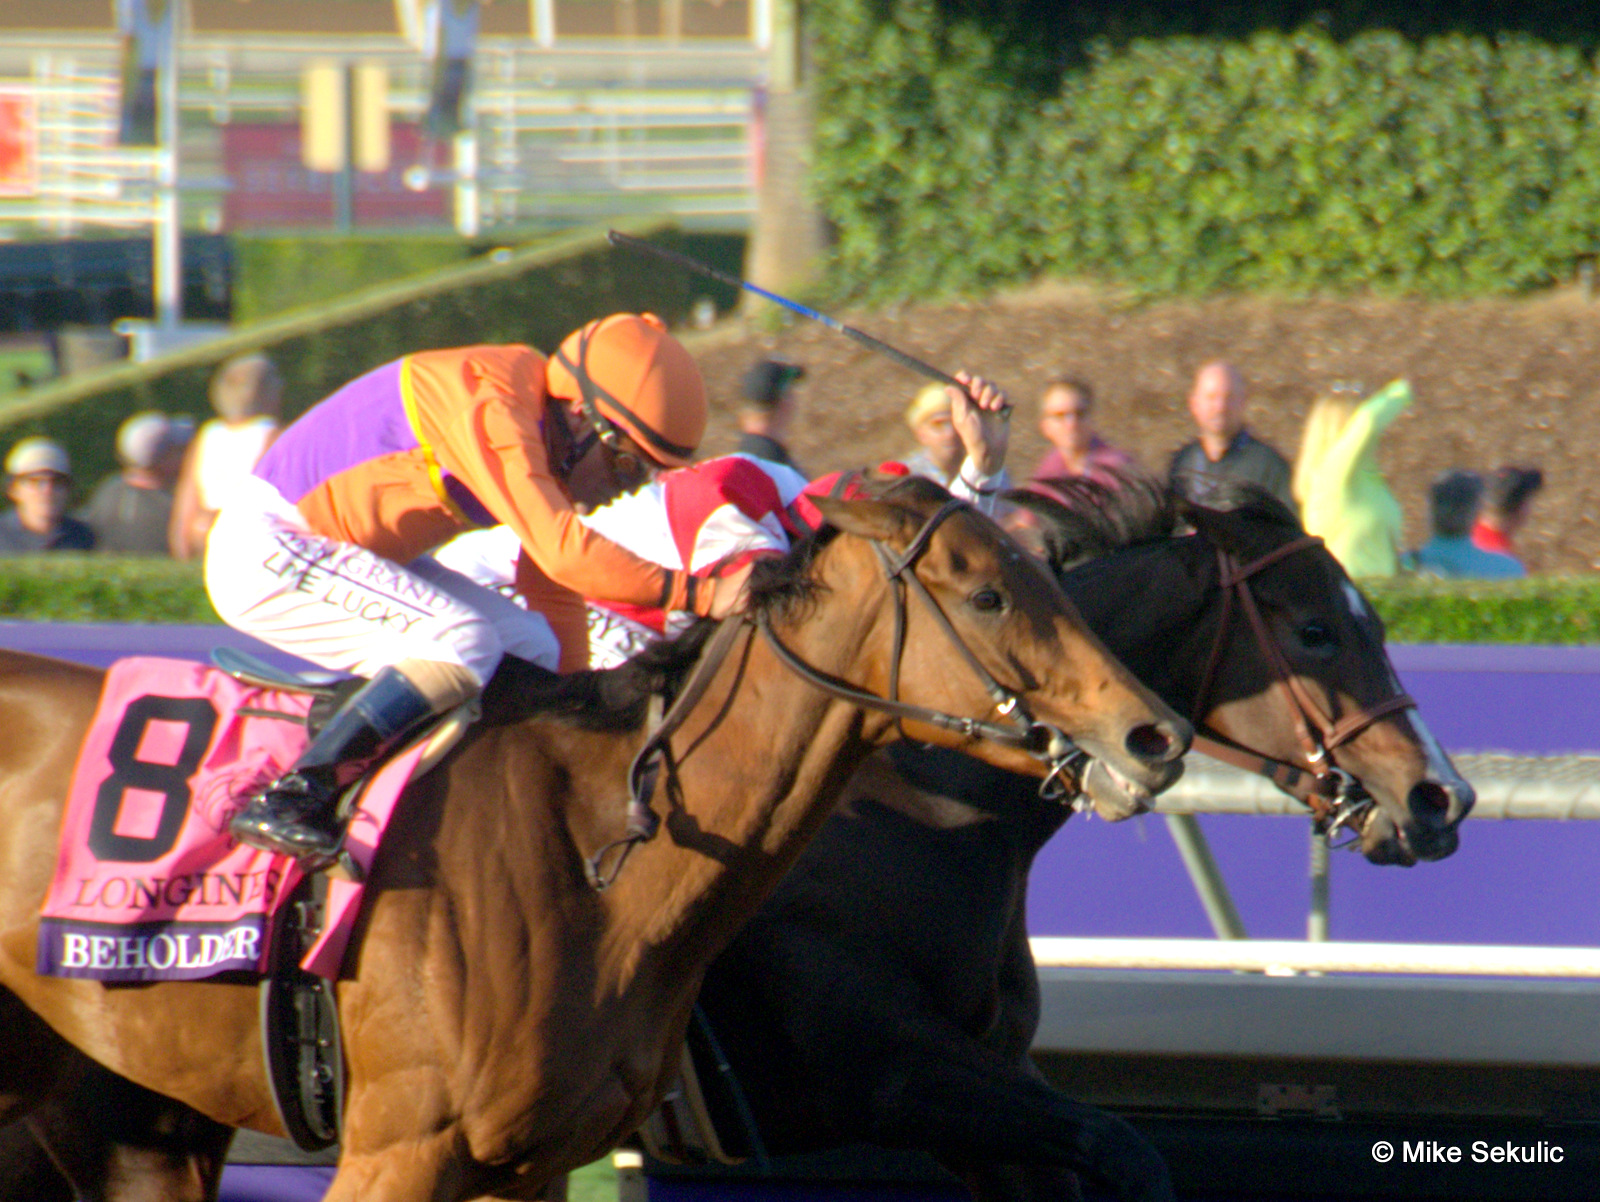 Beholder gets the better of Songbird in the Breeders Cup Distaff Stakes